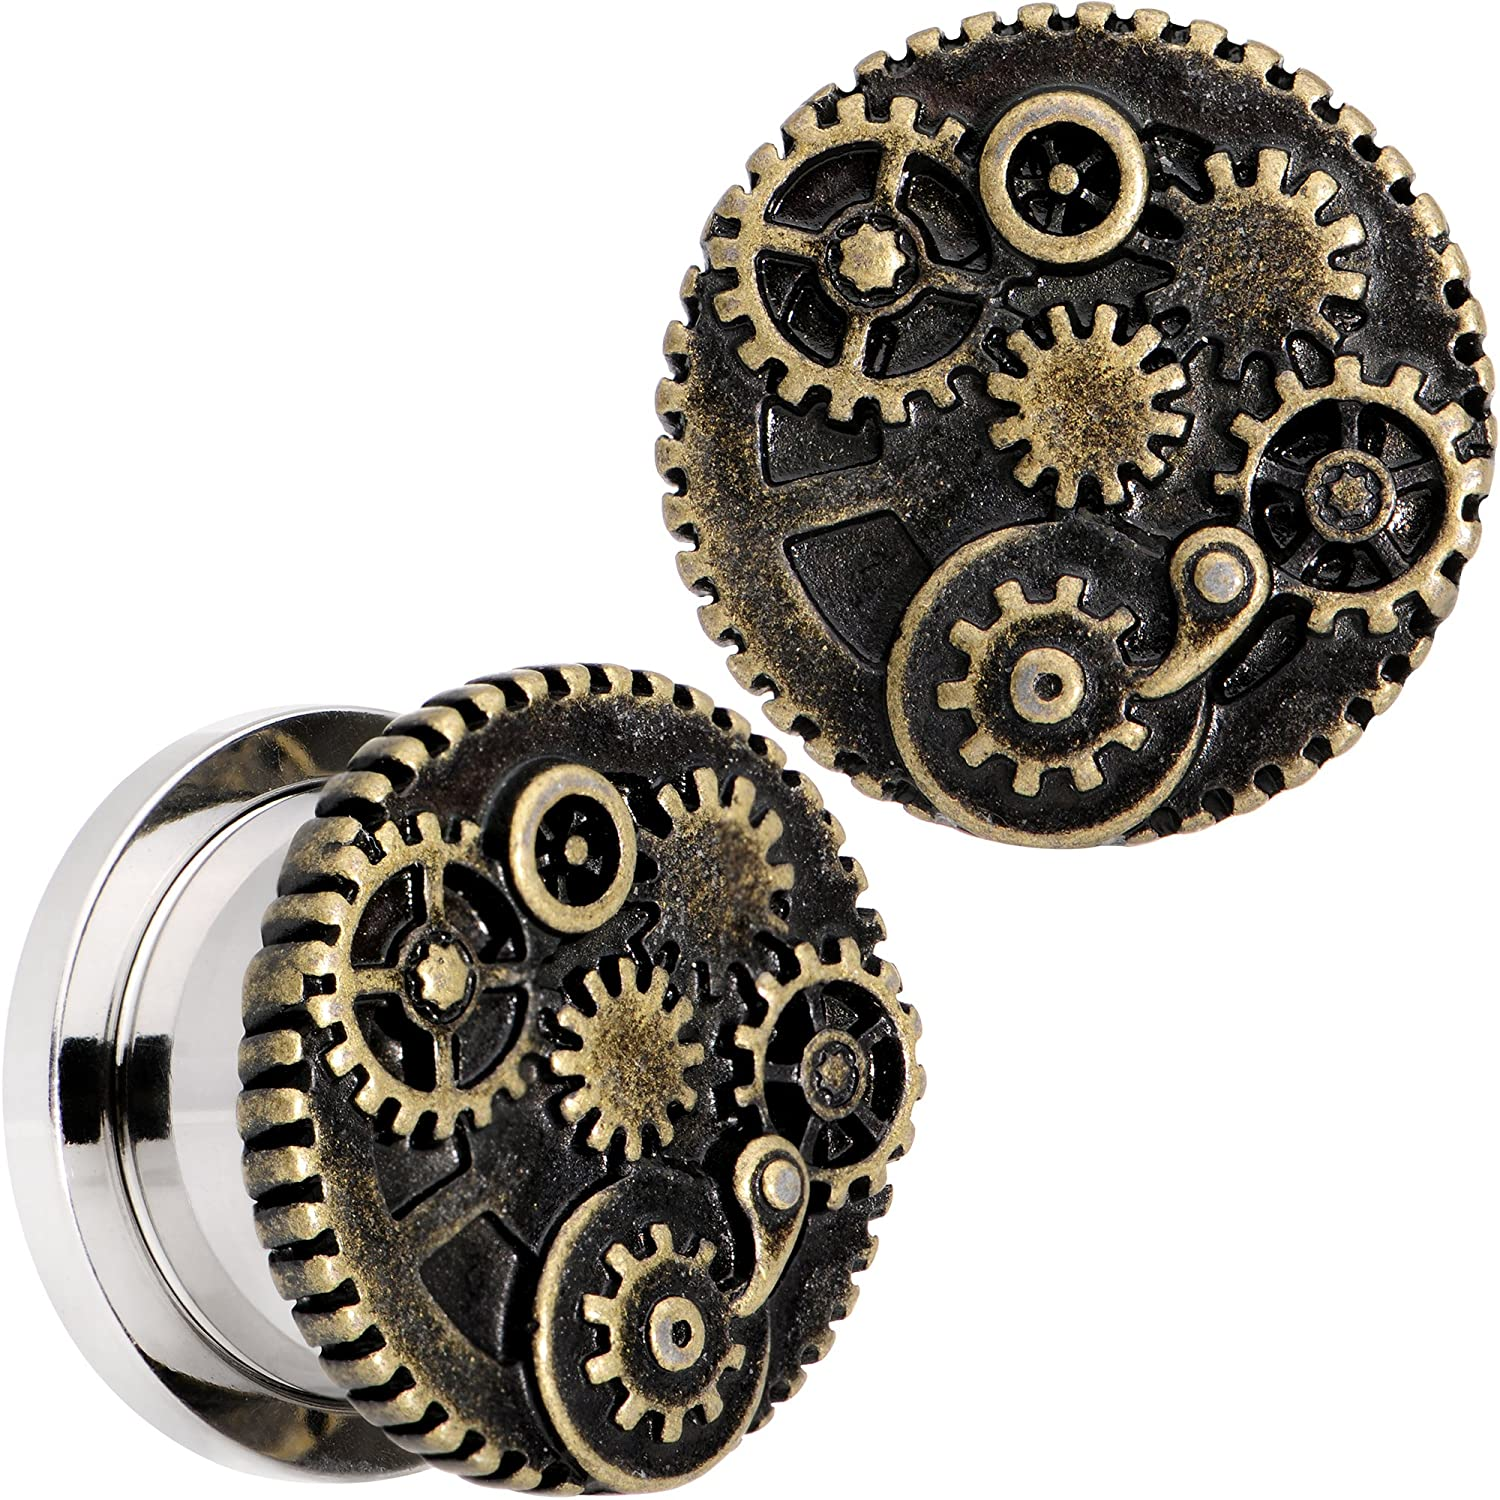 Body Candy Steel Steampunk Gears and Gizmos Screw Fit Tunnel Plug Set of 2 6mm to 25mm